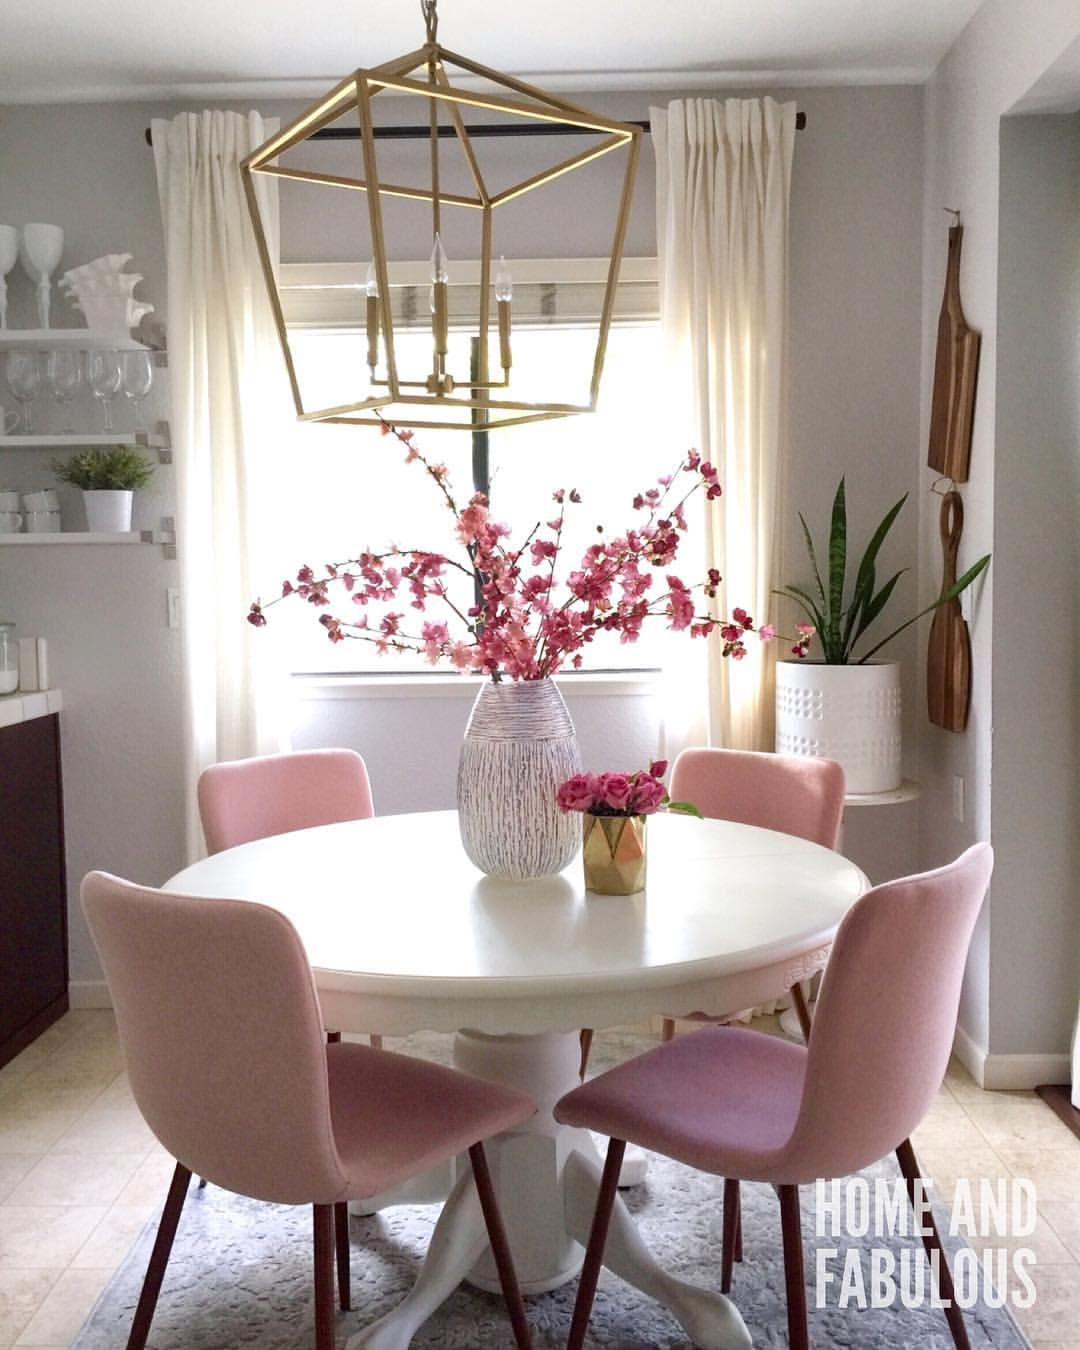 Retro home decor rooms living room also modern kitchen dining design and ideas rh pinterest